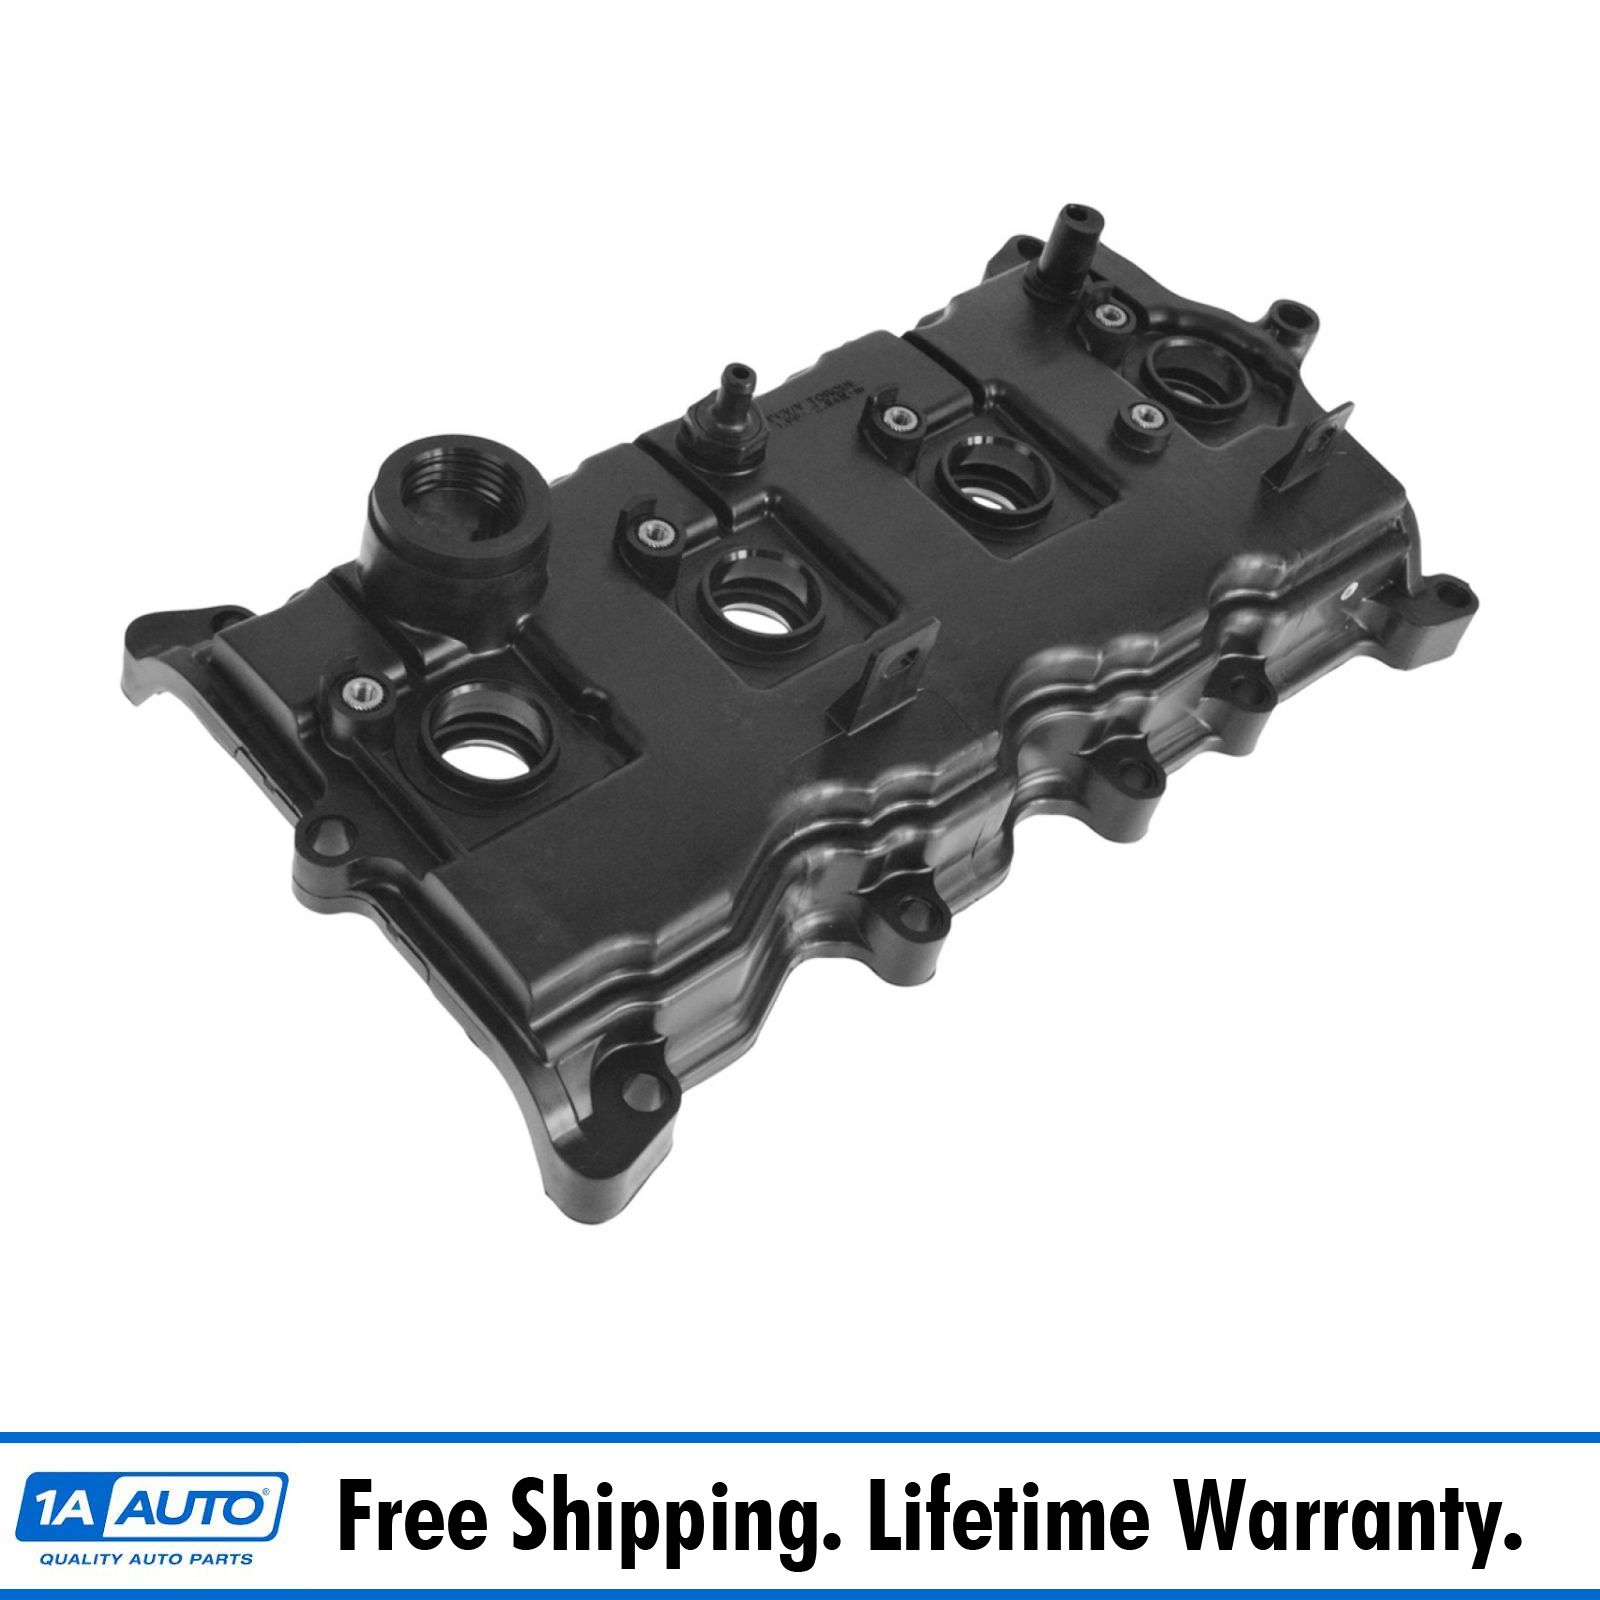 New Brand Engine Valve Cover with Gasket for Nissan Altima Sentra 2007-2013